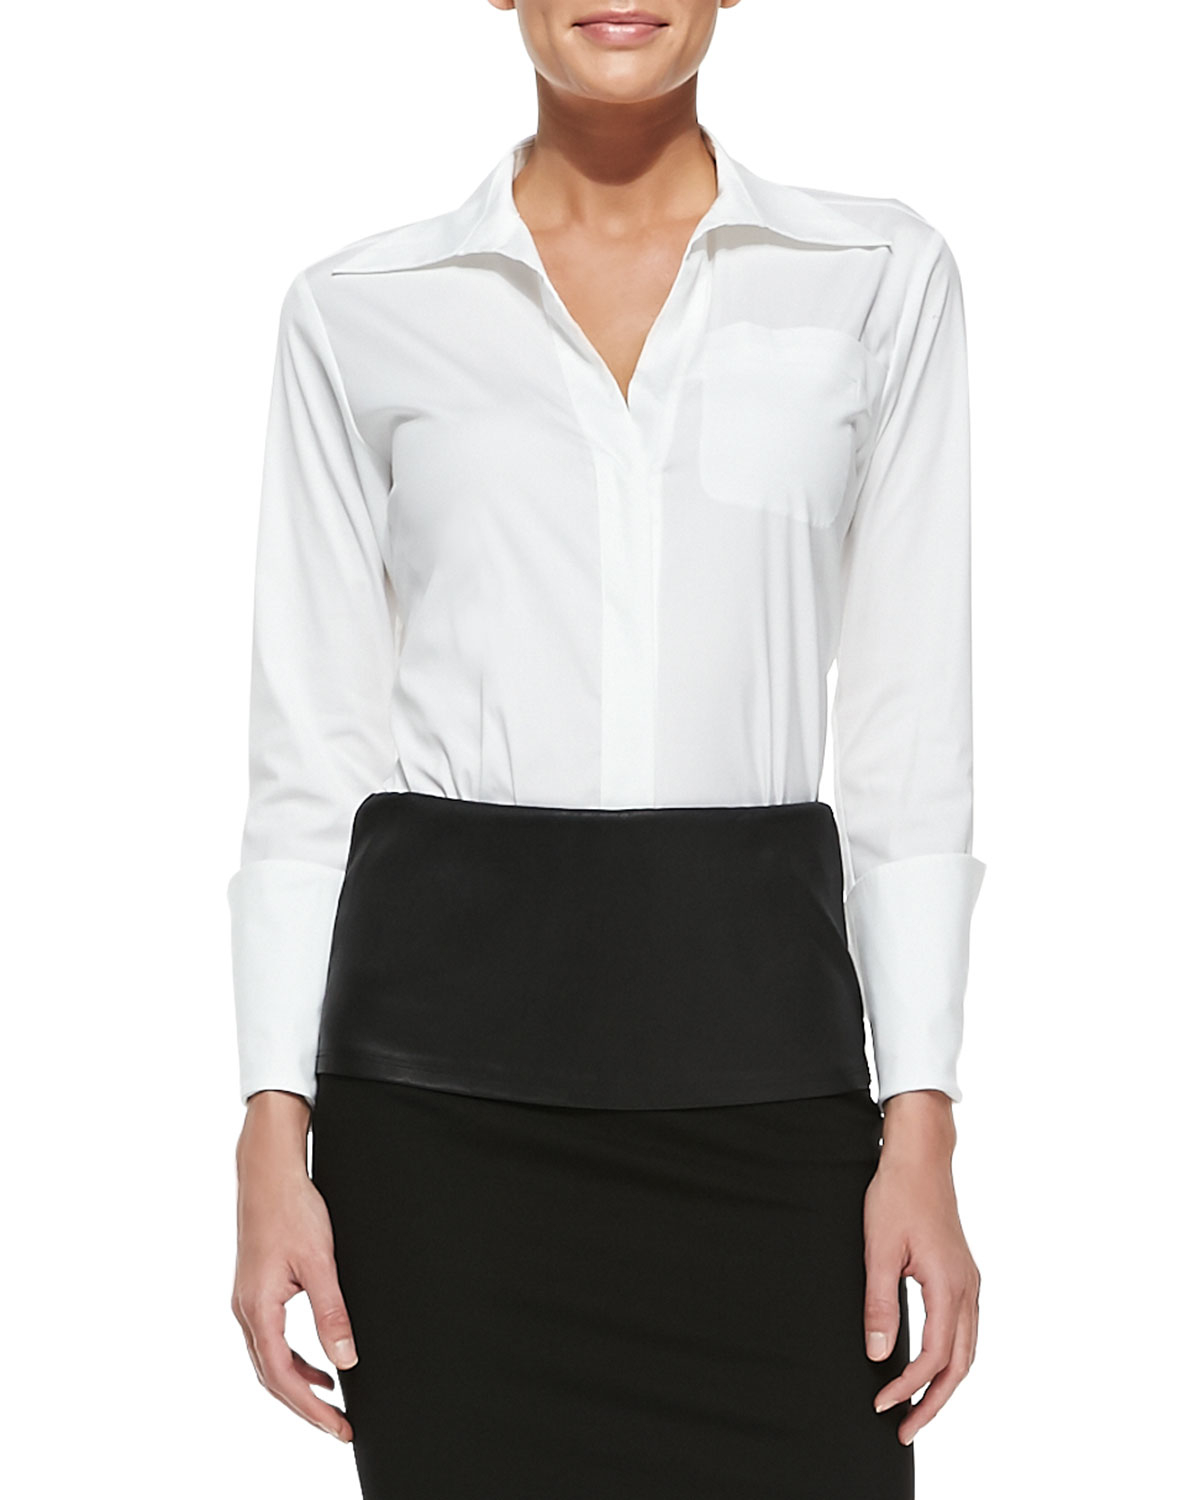 Donna karan new york tailored menswear shirt with long for New york and company dress shirts